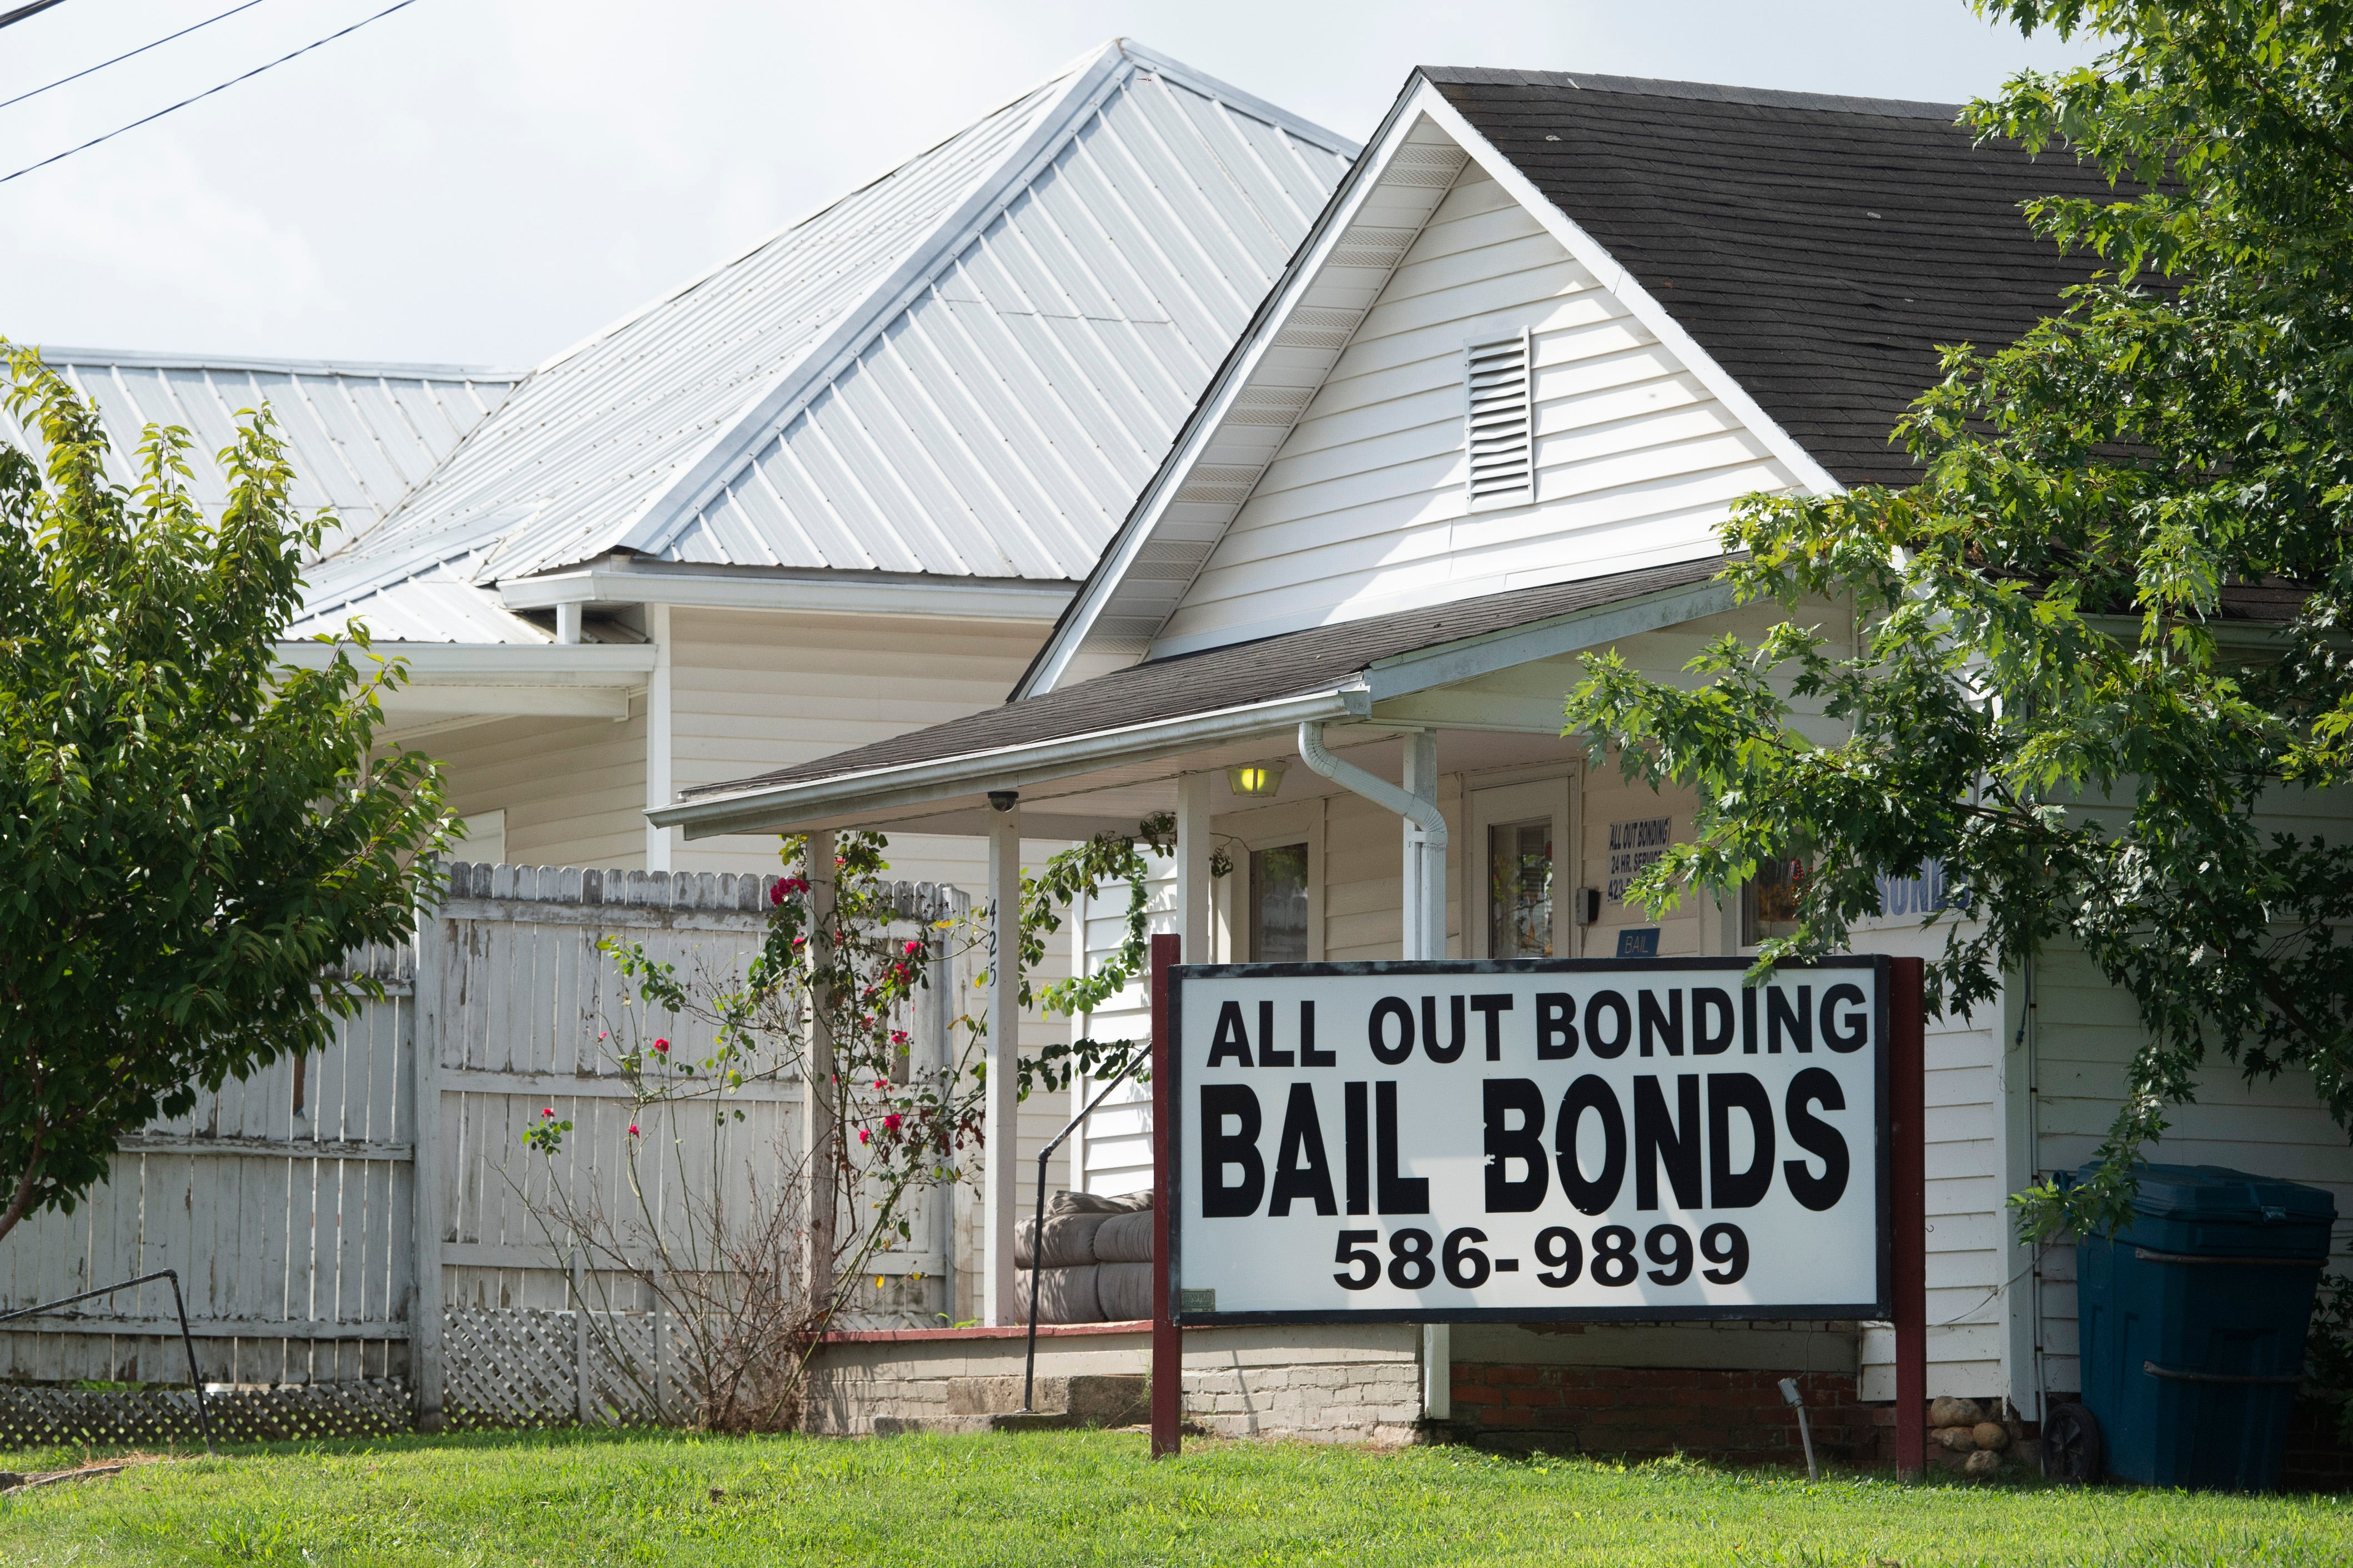 In East Tennessee's Hamblen County, the accused are given a list of bail bonds agencies as part of the booking process and allowed to use jail phones for free to call those companies. There is no evidence in Tennessee that the accused freed during the pandemic either failed to show up for court or committed new crimes at a rate any higher than in pre-COVID times.